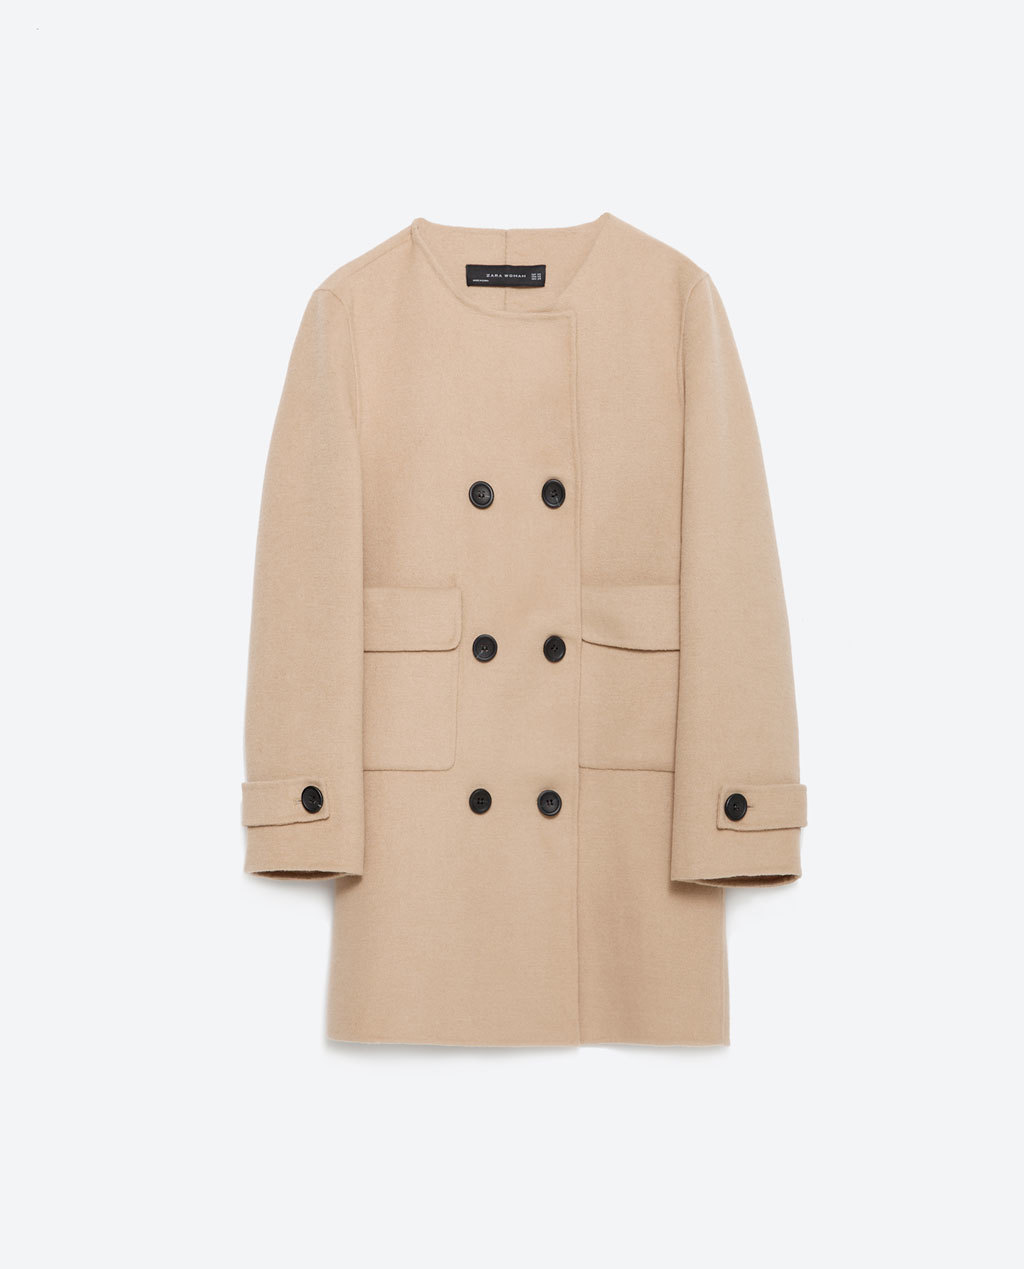 Hand Made Coat - pattern: plain; length: below the bottom; collar: round collar/collarless; style: double breasted; predominant colour: nude; occasions: casual; fit: straight cut (boxy); fibres: wool - mix; sleeve length: long sleeve; sleeve style: standard; collar break: high; pattern type: fabric; texture group: woven bulky/heavy; season: a/w 2015; wardrobe: basic